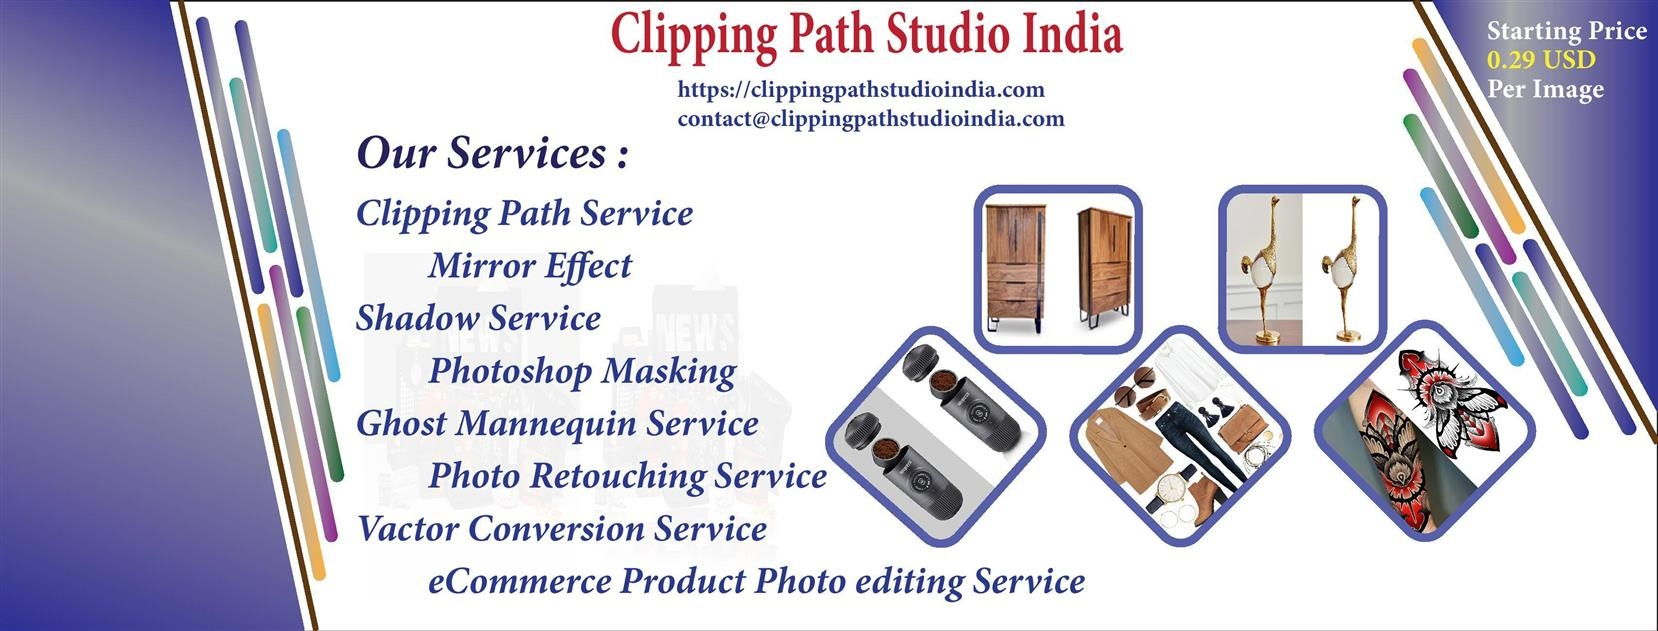 Clipping Path Studio India (@clippingpathstudioindia) Cover Image